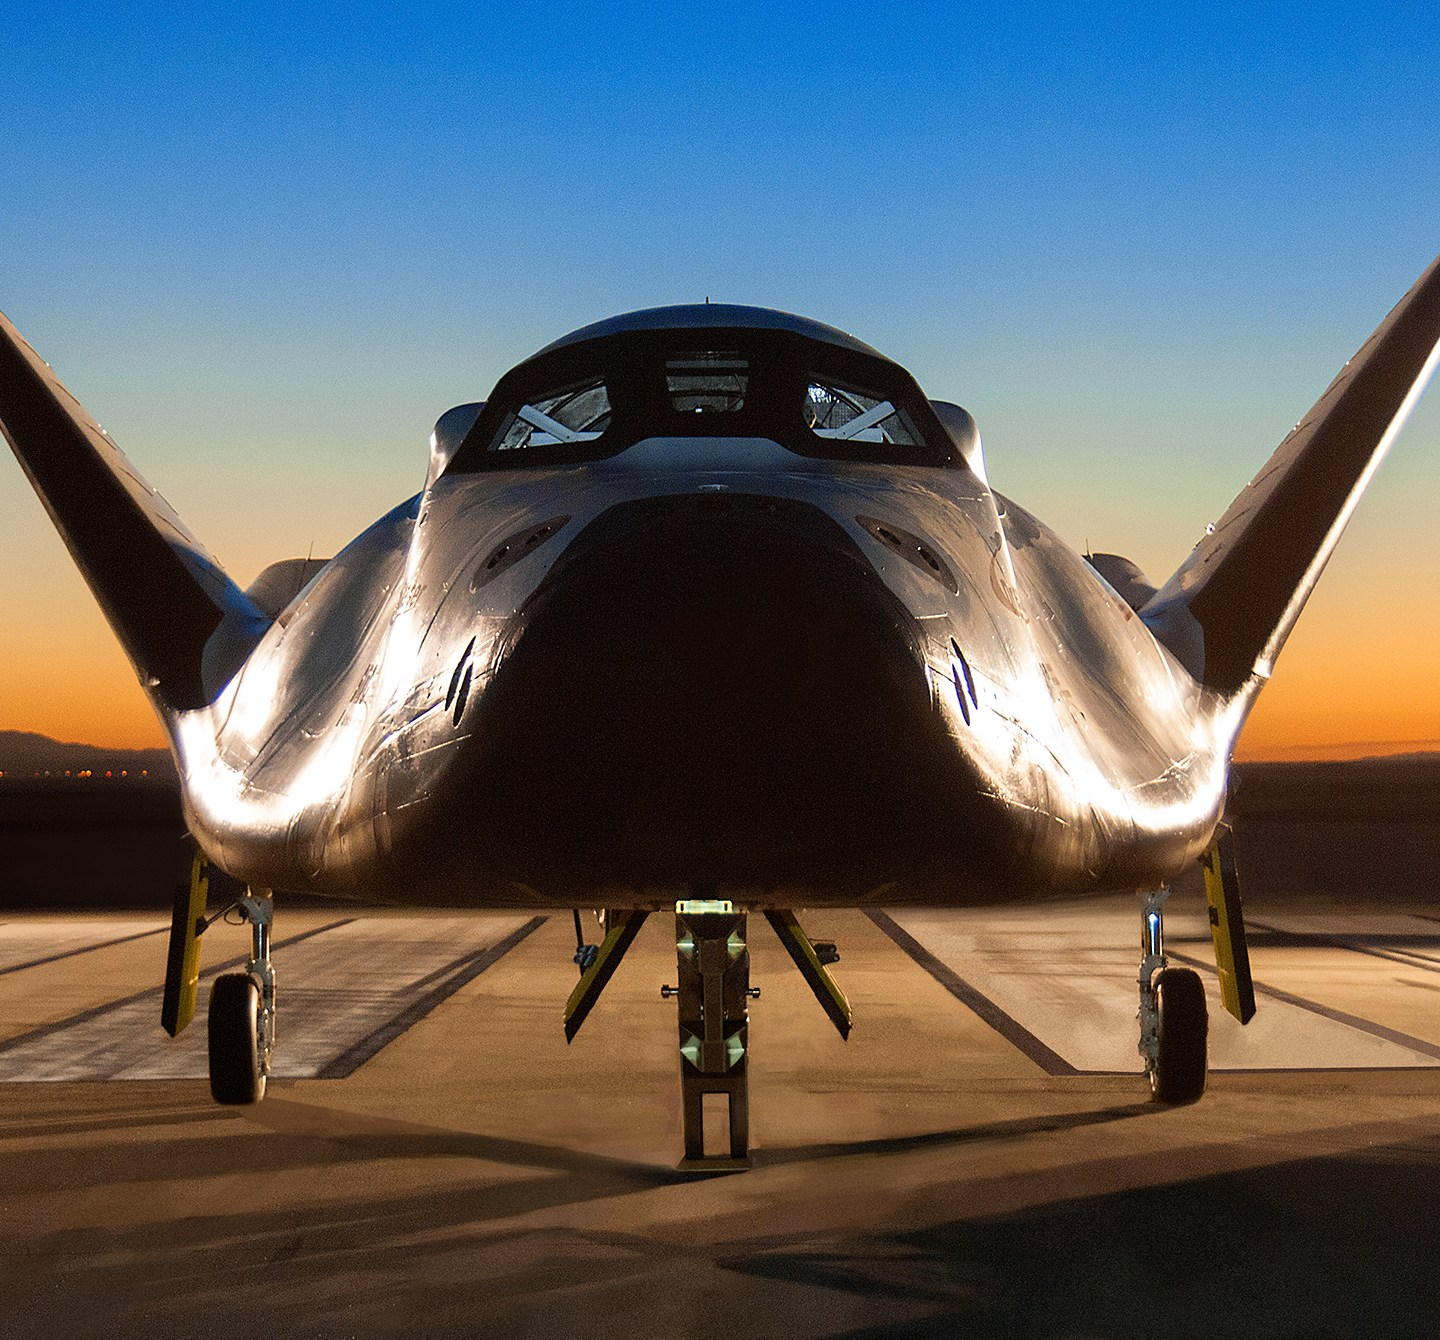 The Age of the Spaceplane is Coming